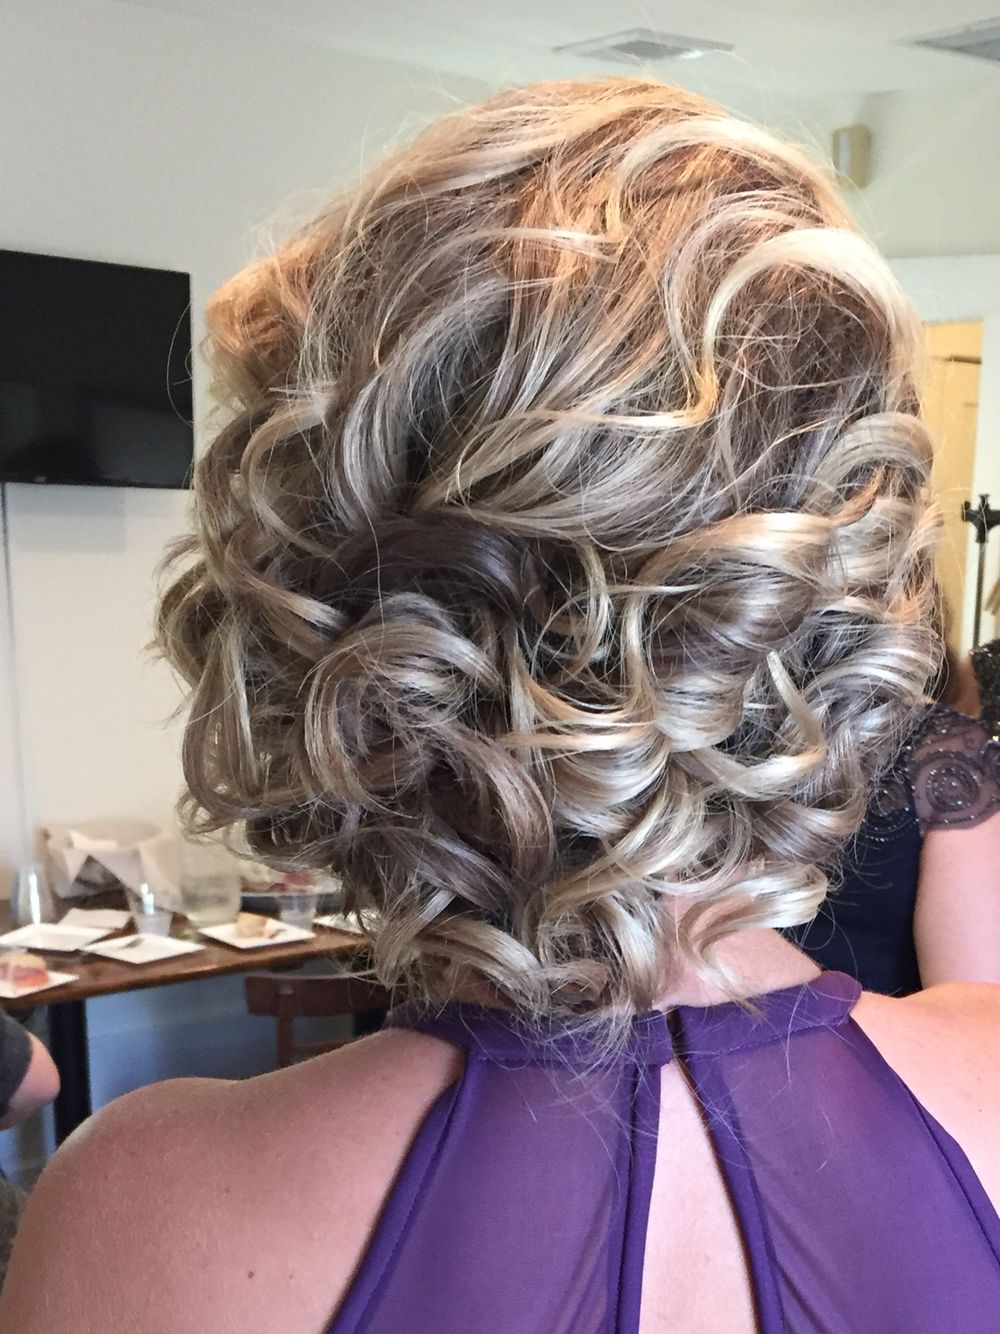 Best updo for shoulder length hair this was my bridesmaid updo by